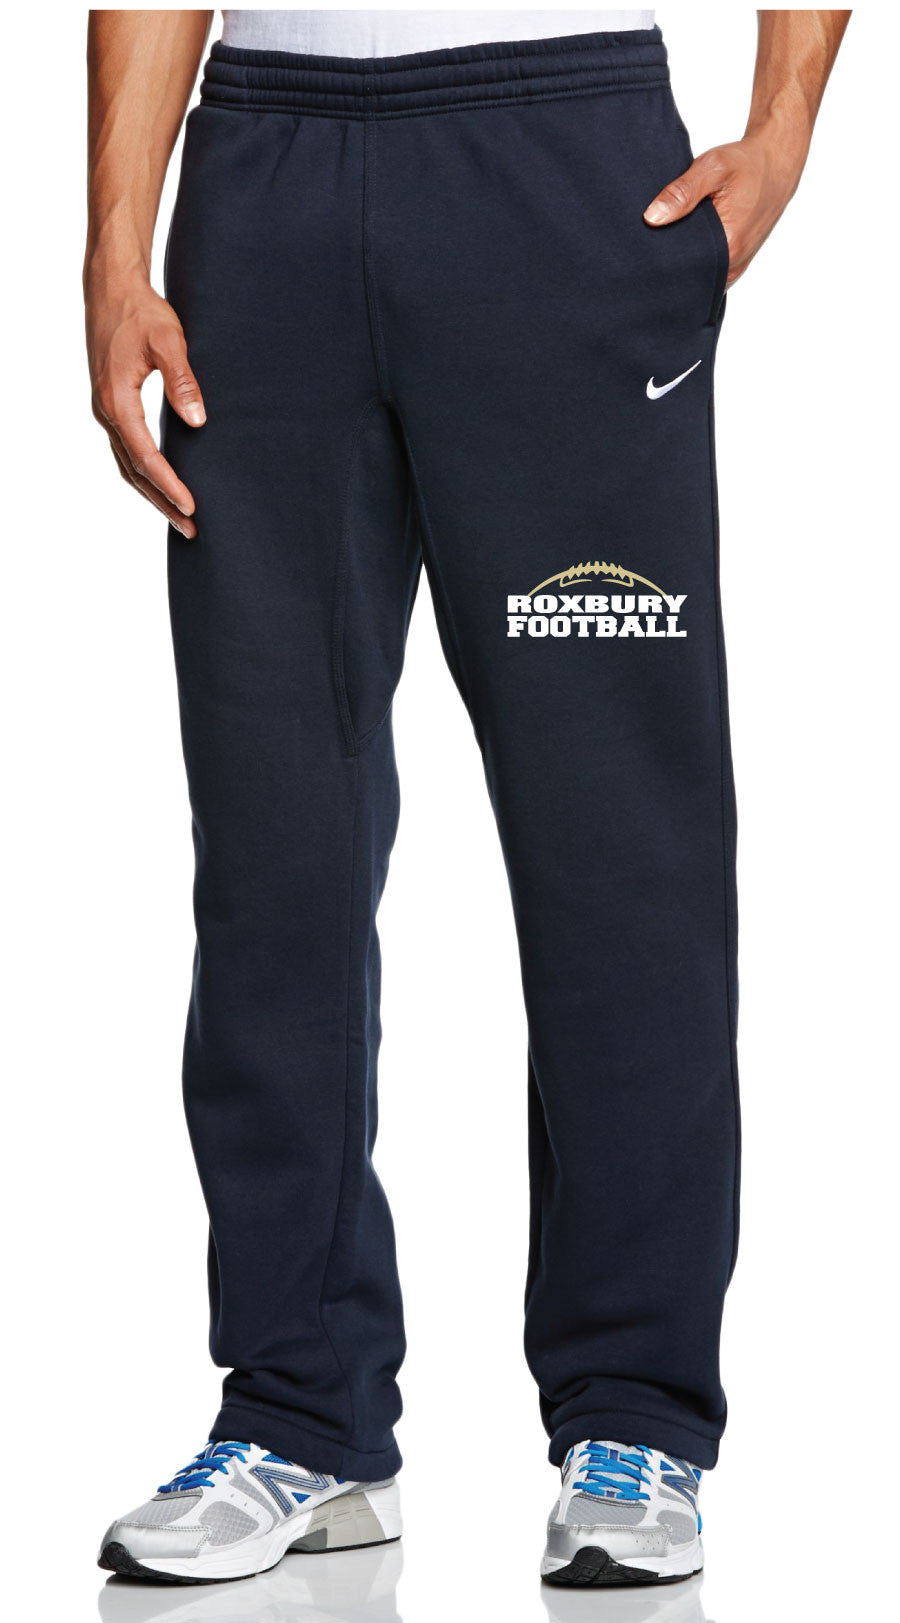 Roxbury Football -  Nike Fleece Sweatpants Pants